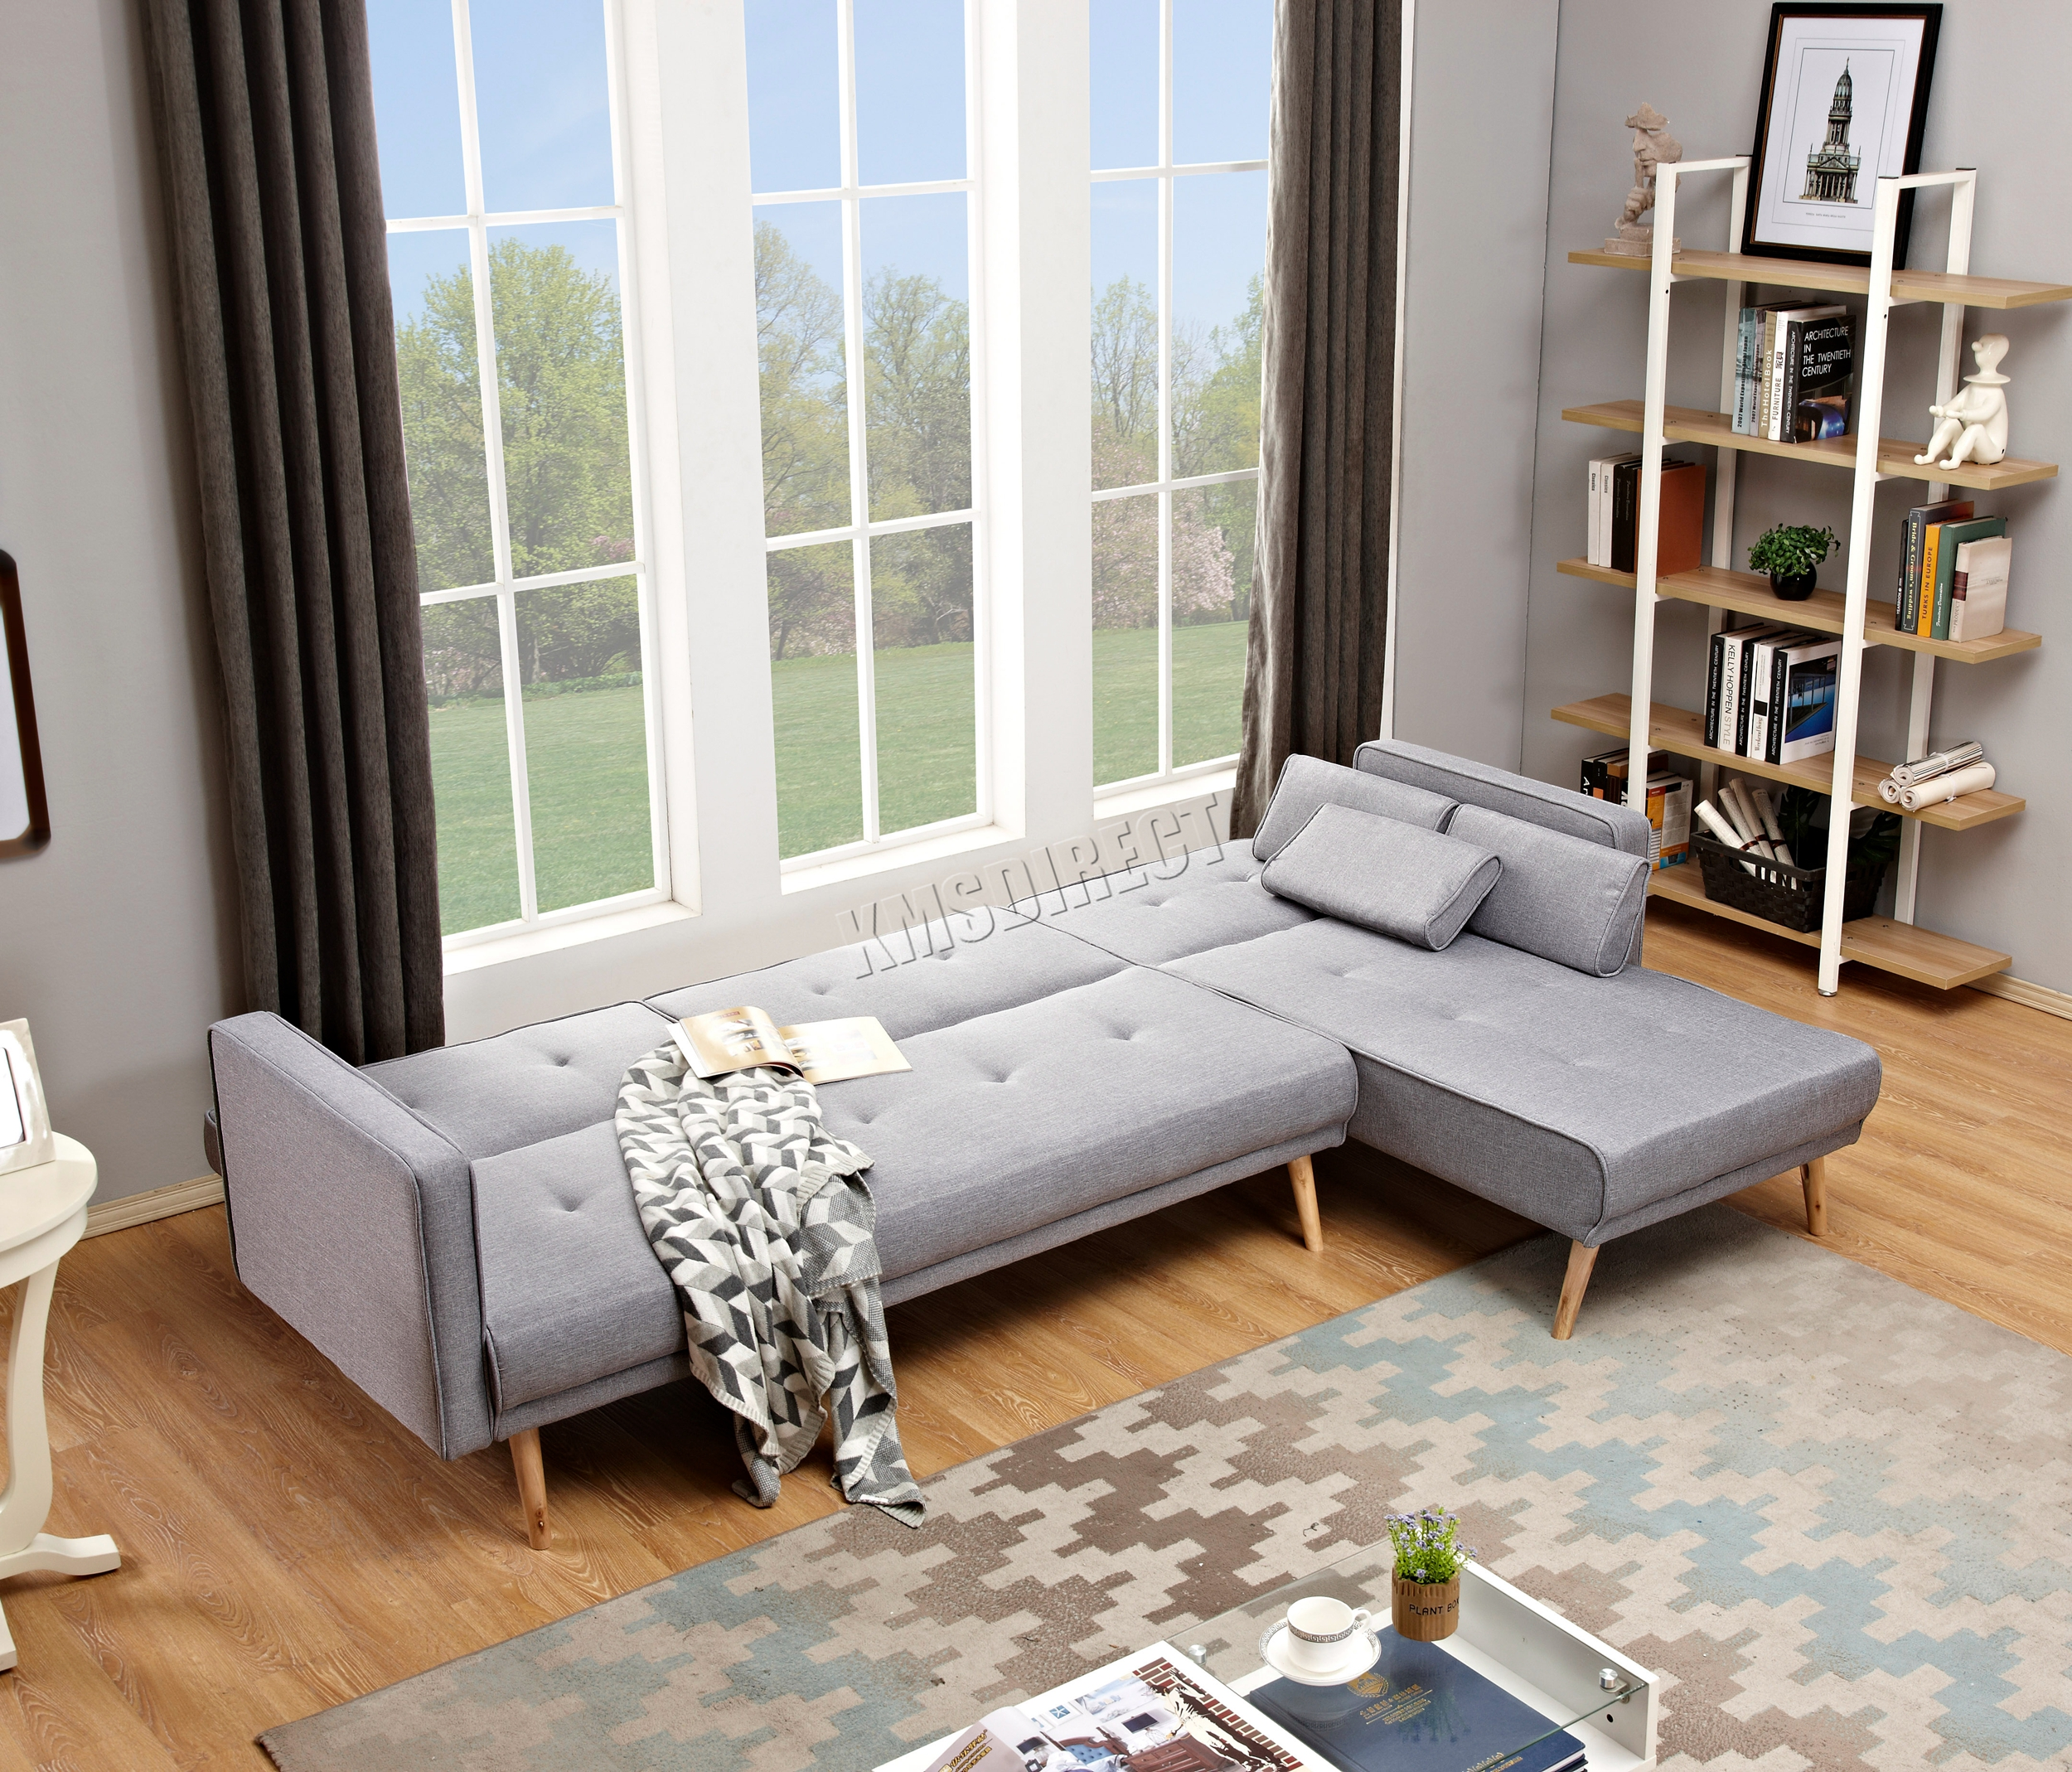 WestWood Luxury L-Shape Fabric Sofa Bed Corner Couch 3/4 Seater ...